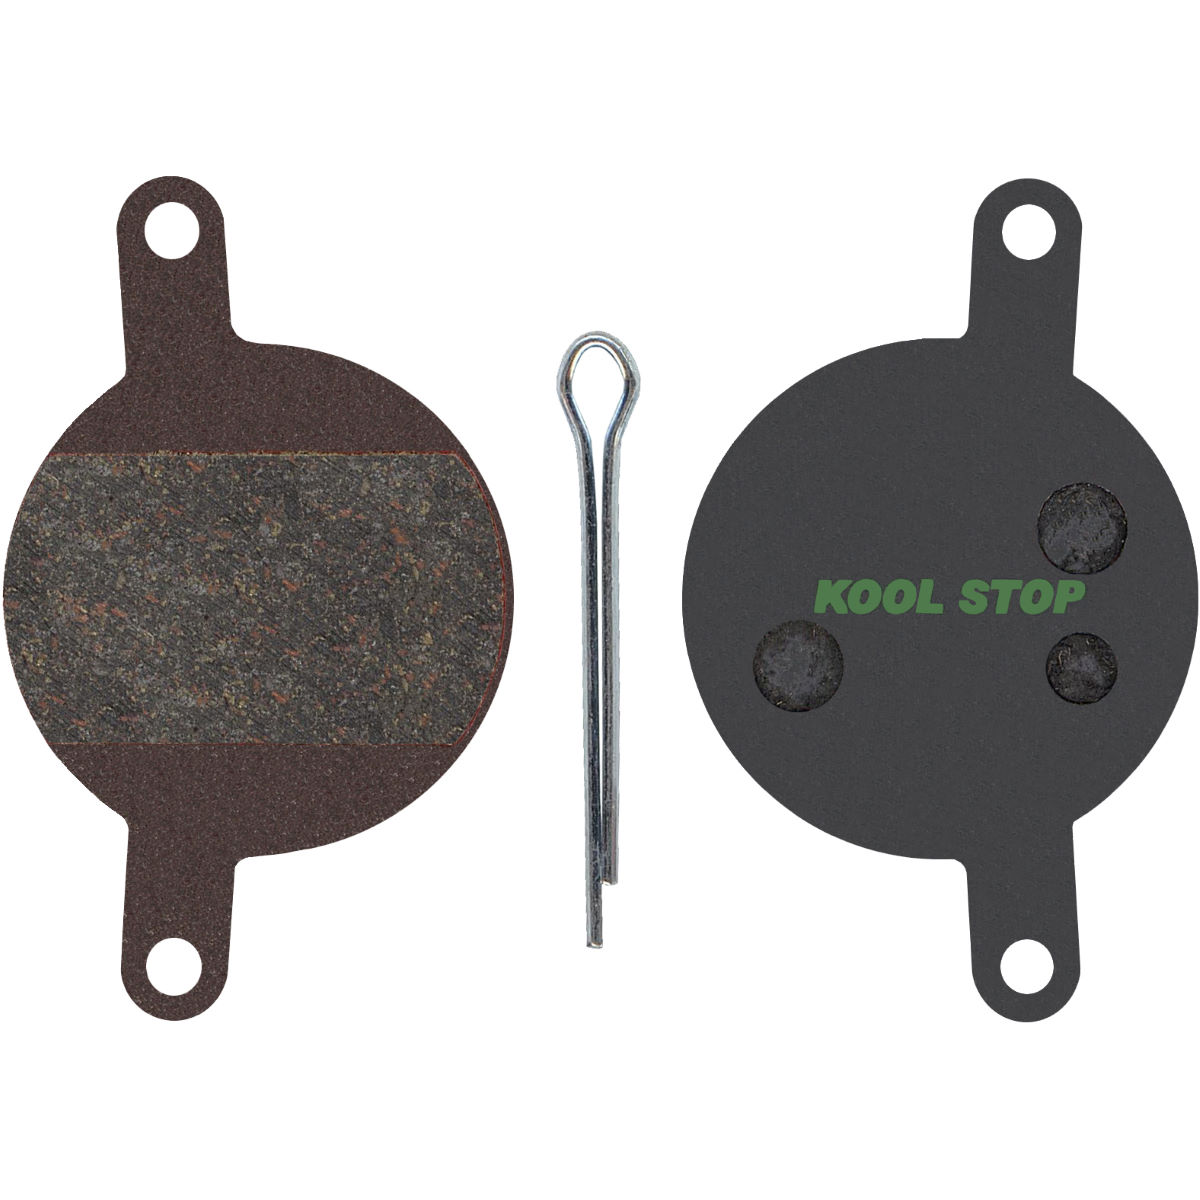 Kool Stop Kool Stop D130E Magura Julie Pads for E-Bike   Disc Brake Pads